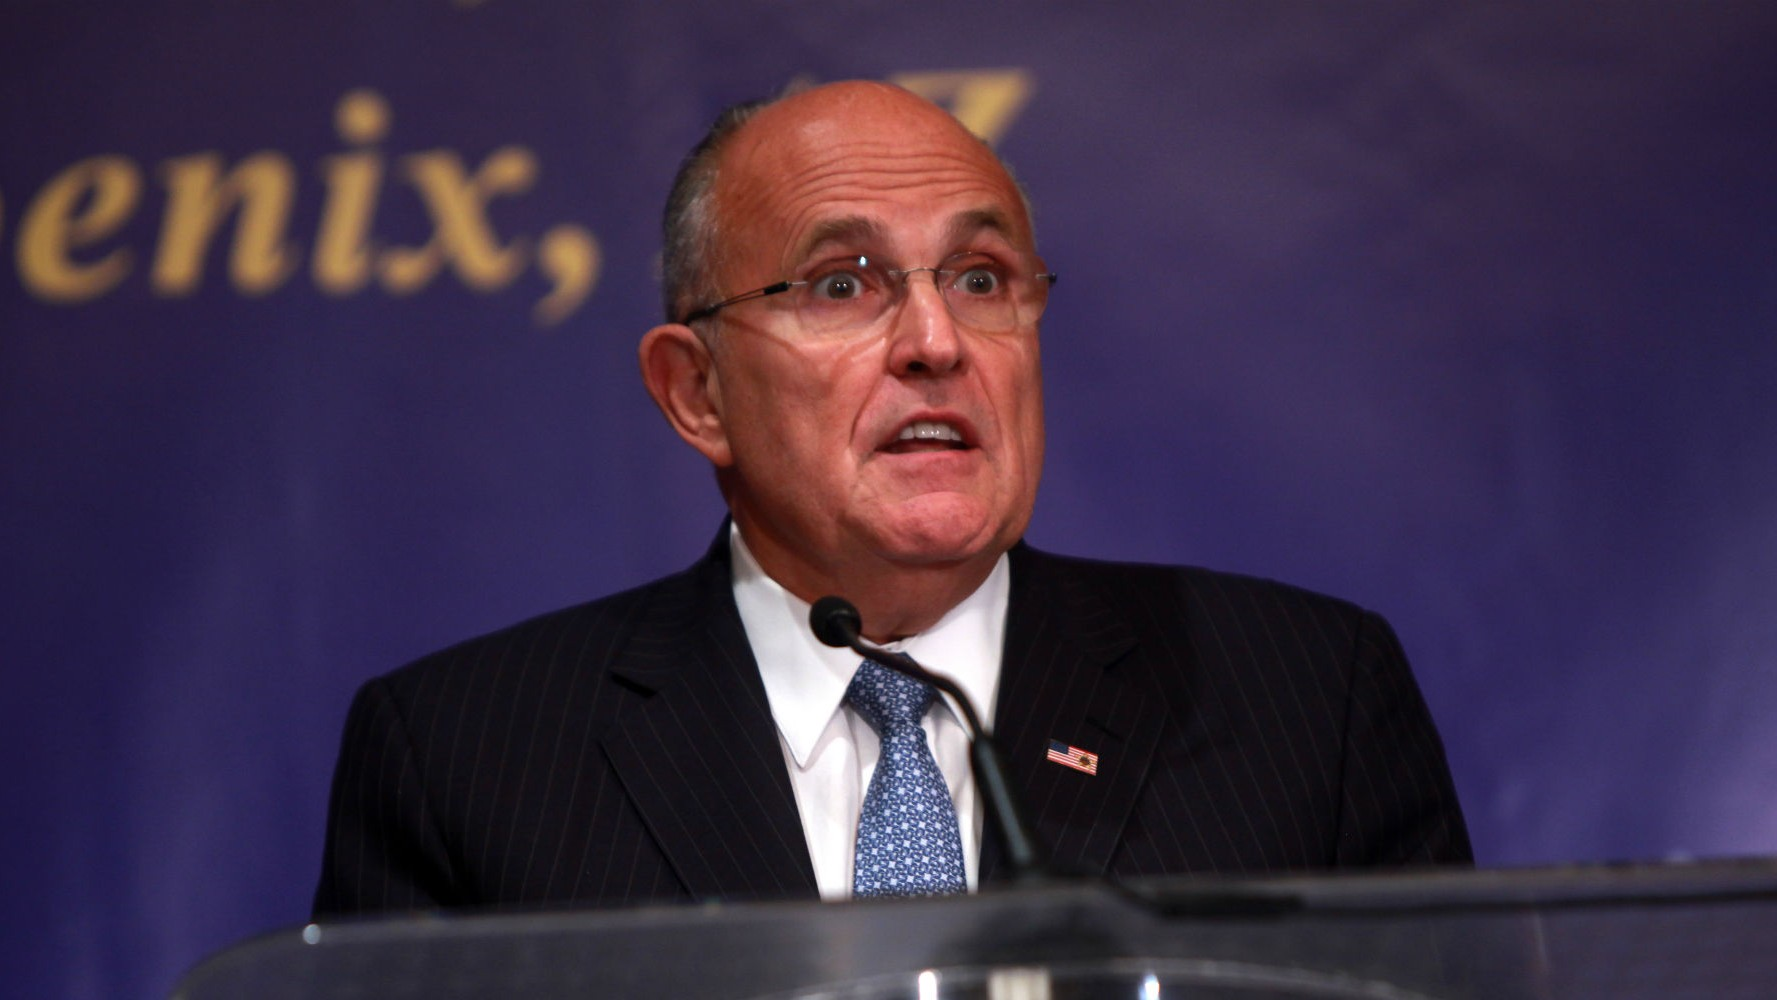 What Does Rudy Giuliani Actually Know About Cybersecurity?